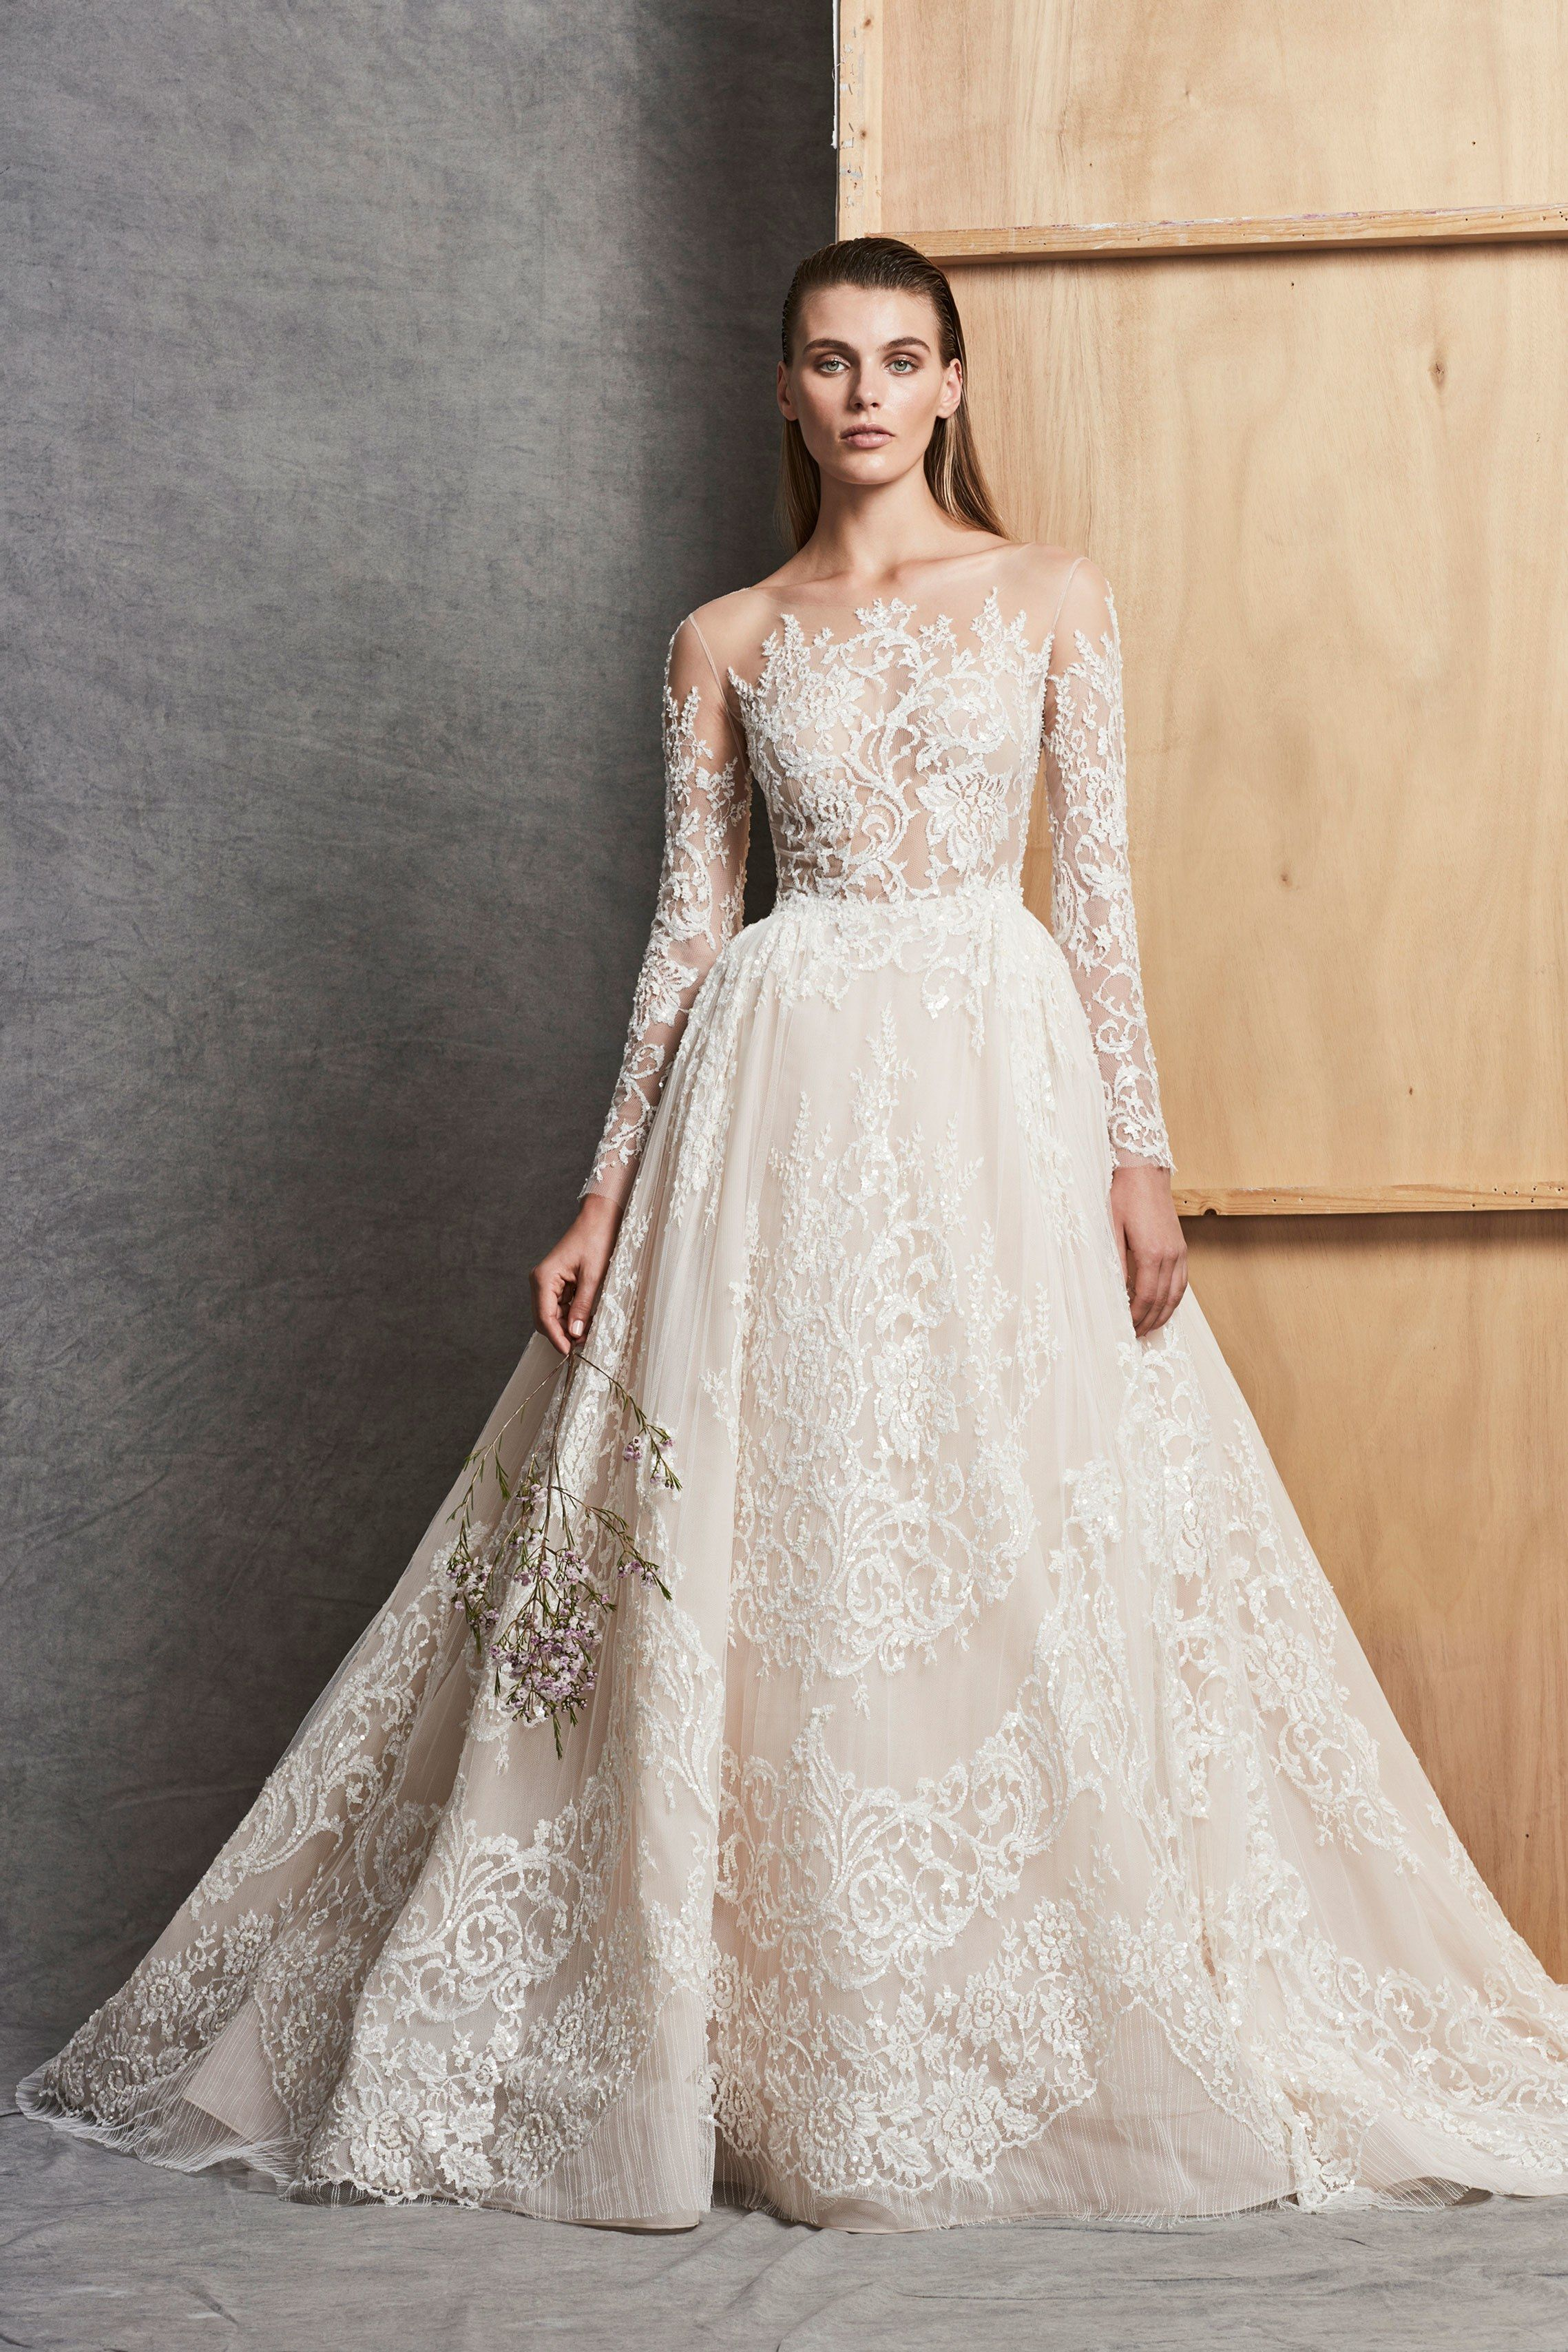 Zuhair Murad Bridal Fall 2018 Collection Photos Vogue